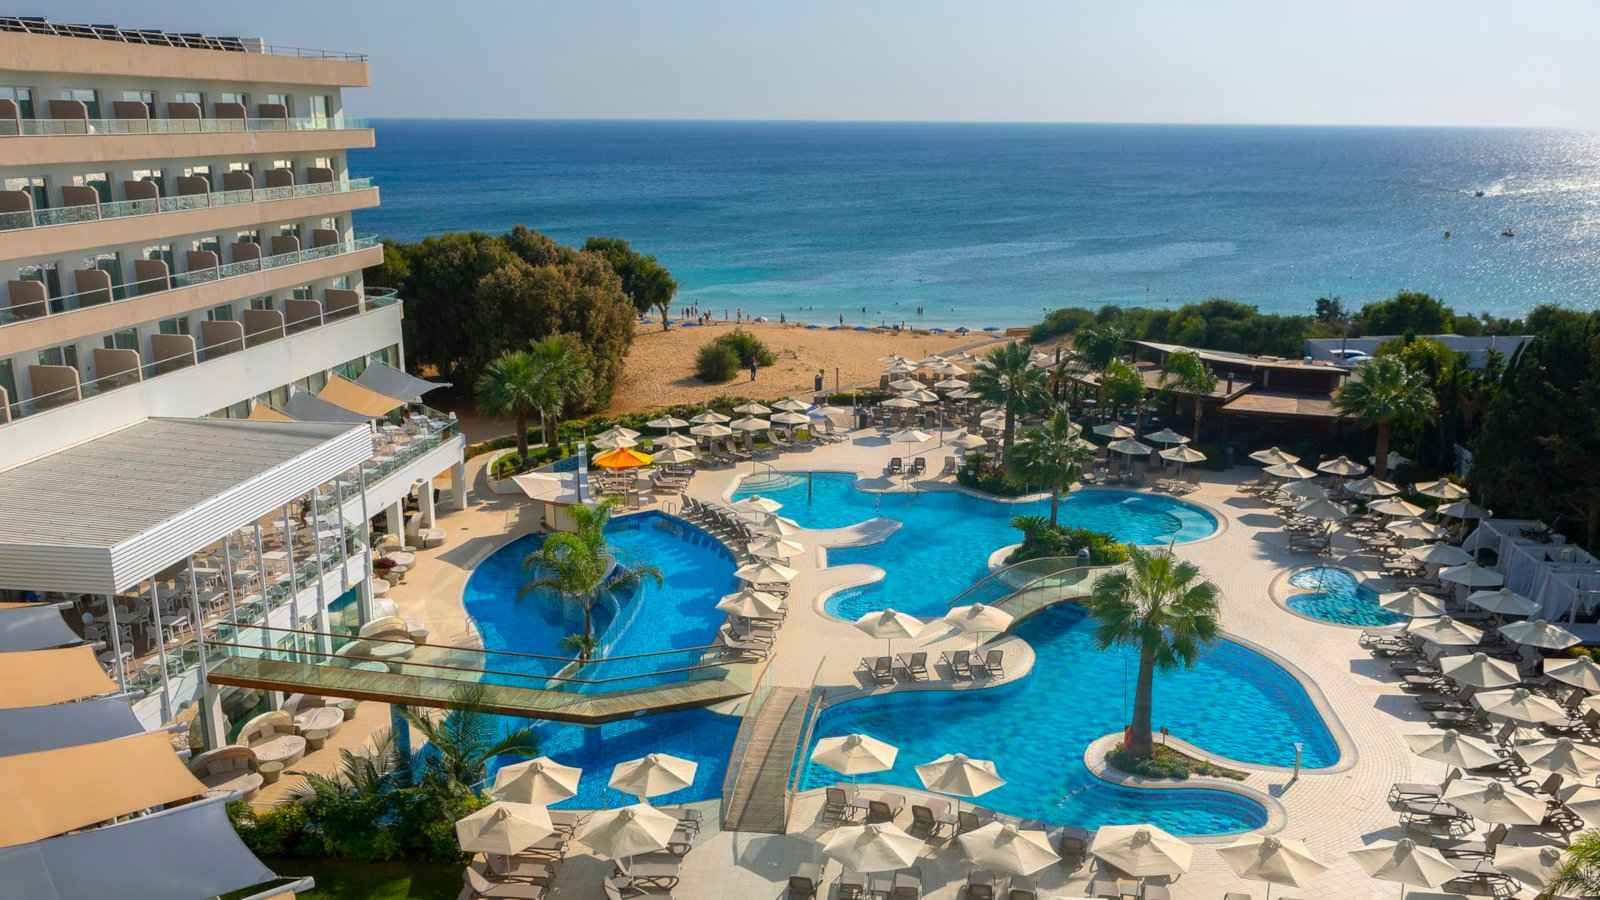 Melissi Beach Hotel and Spa is a fabulous place to stay in Cyprus if you want both beach and pool life